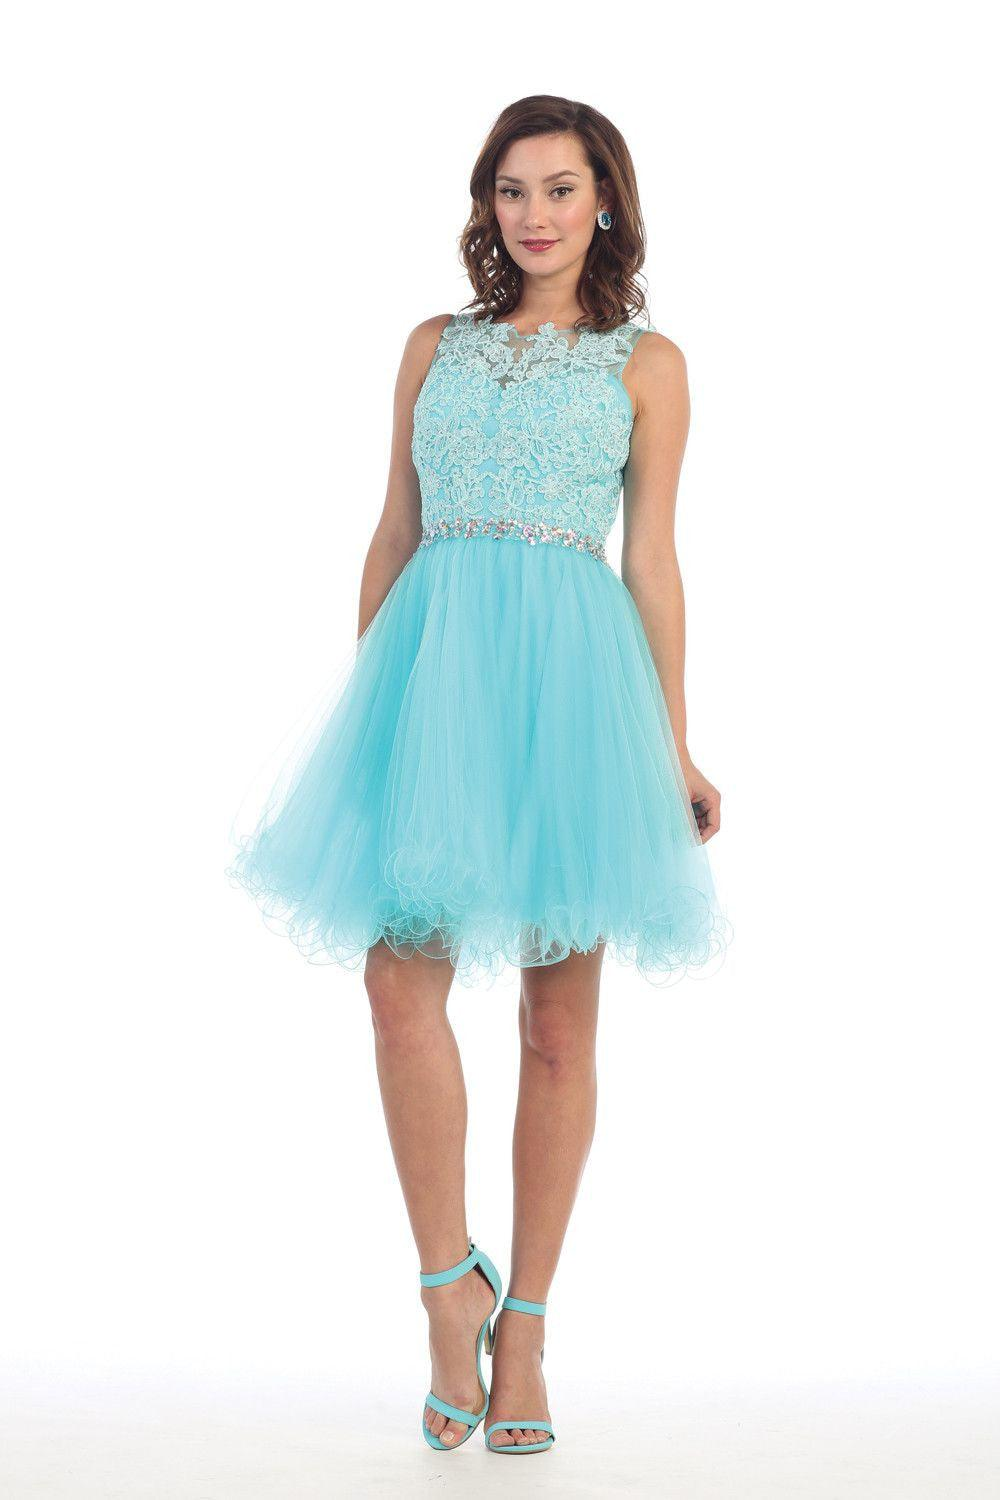 Short Homecoming Dresses - The Dress Outlet